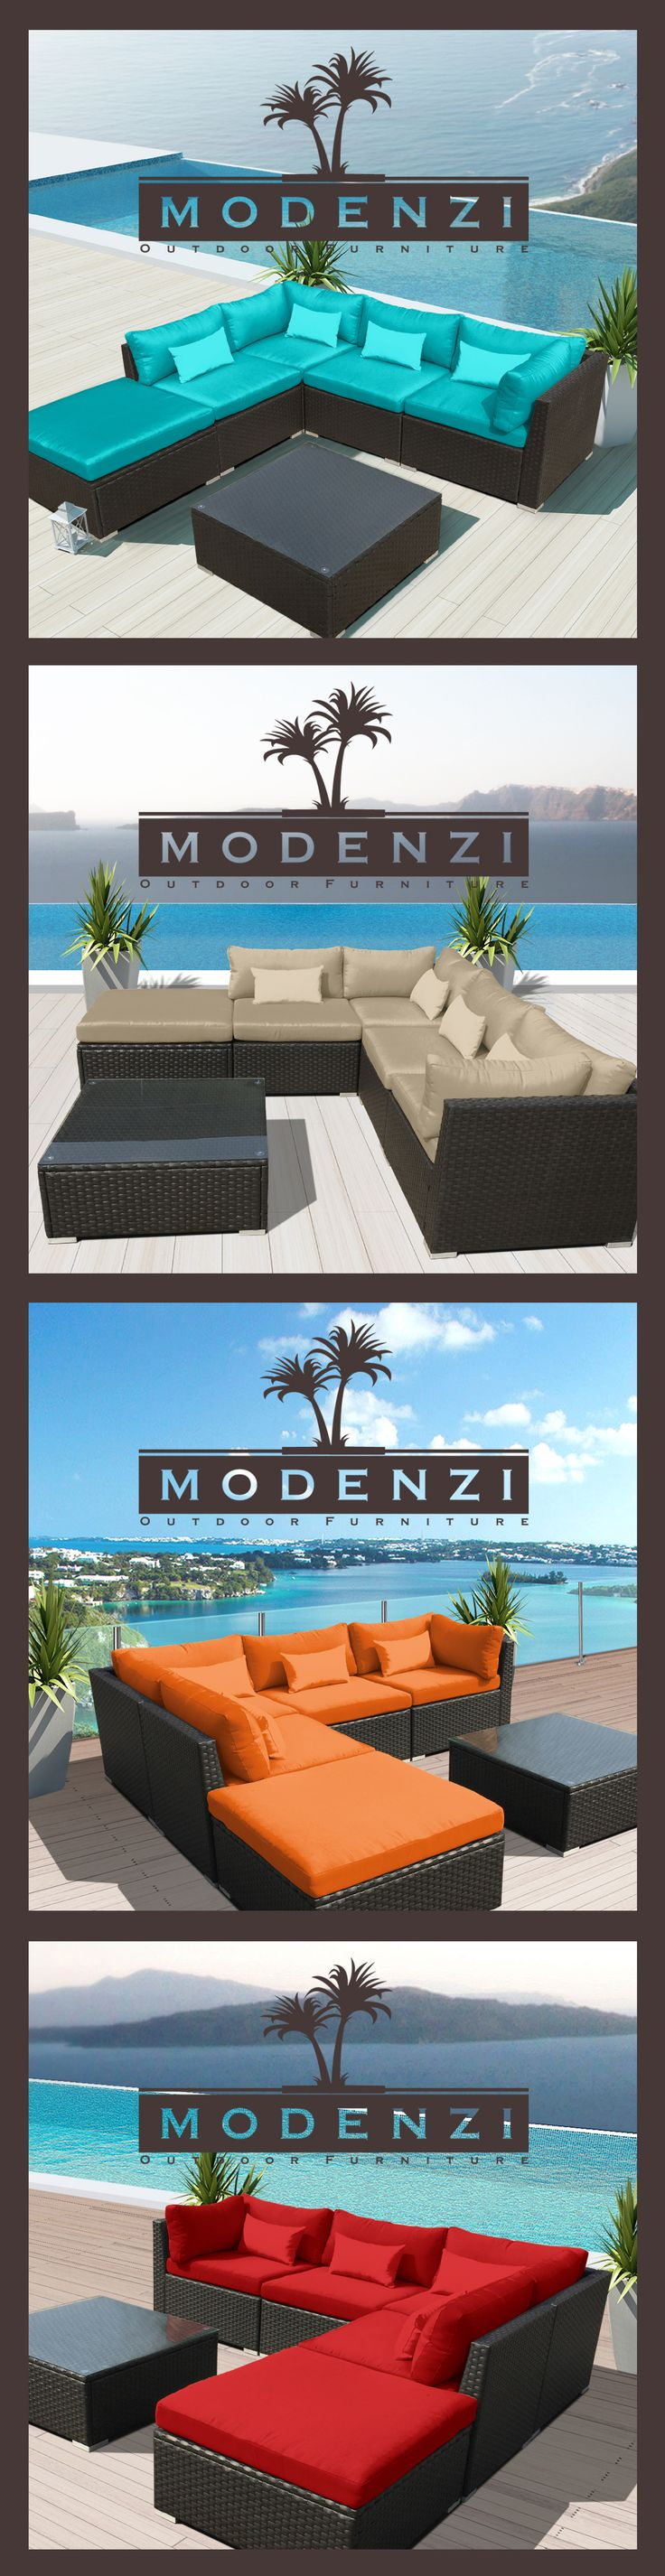 $479+99 6pc Outdoor Patio Furniture Sectional Rattan Wicker Sofa Chair Couch Set Chaise 5 Colors,ALUMINUM Frame not STEEL,2Bassembled MSRP$1799